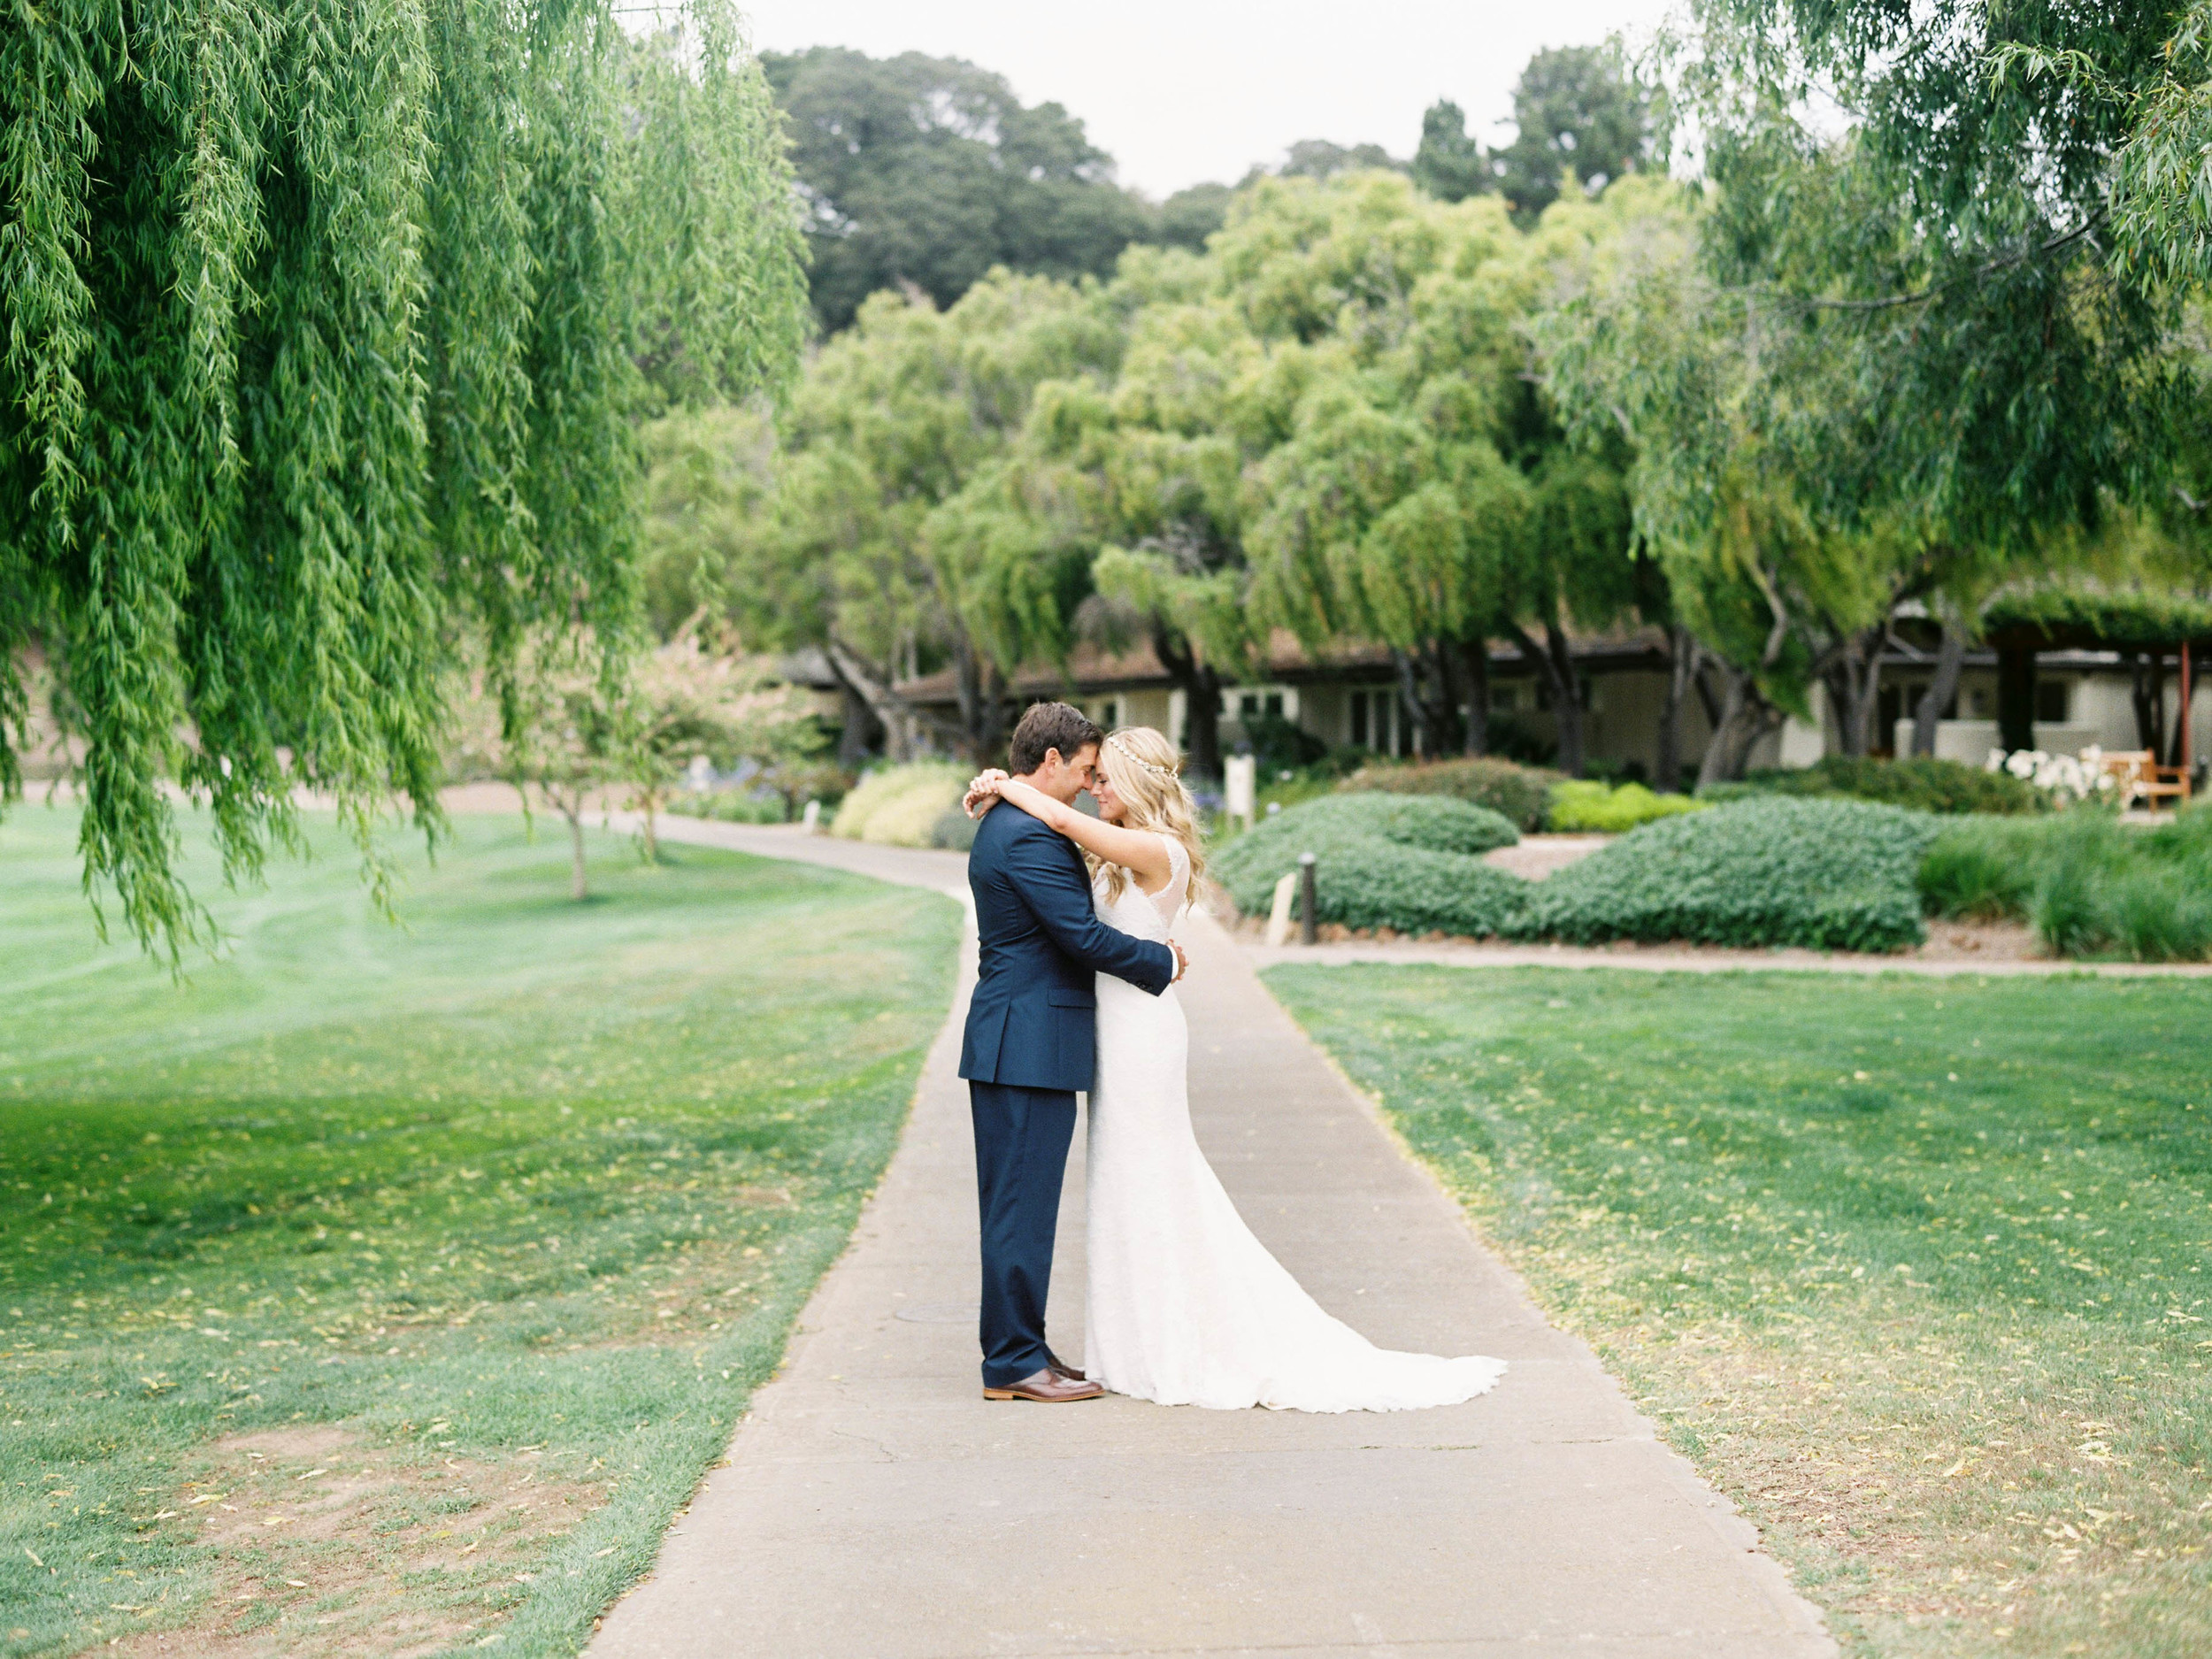 Meghan Mehan Photography - Fine Art Film Photography - San Francisco | Napa | Sonoma | Carmel | Big Sur | Santa Barbara -23.jpg